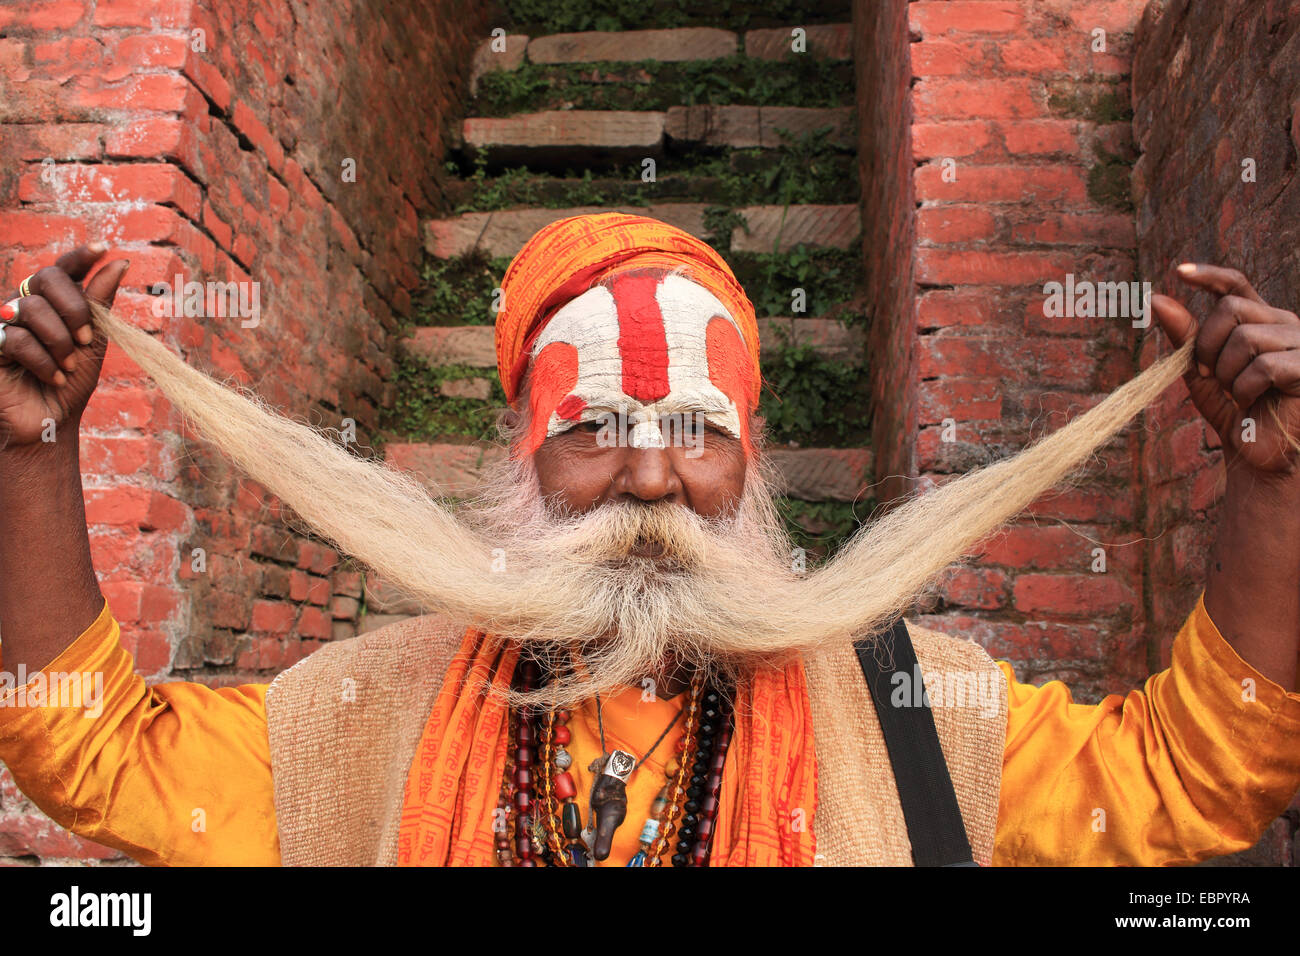 sadhu monk holding up his hairs of the beard, Nepal, Kathmandu, Pashupatinath - Stock Image